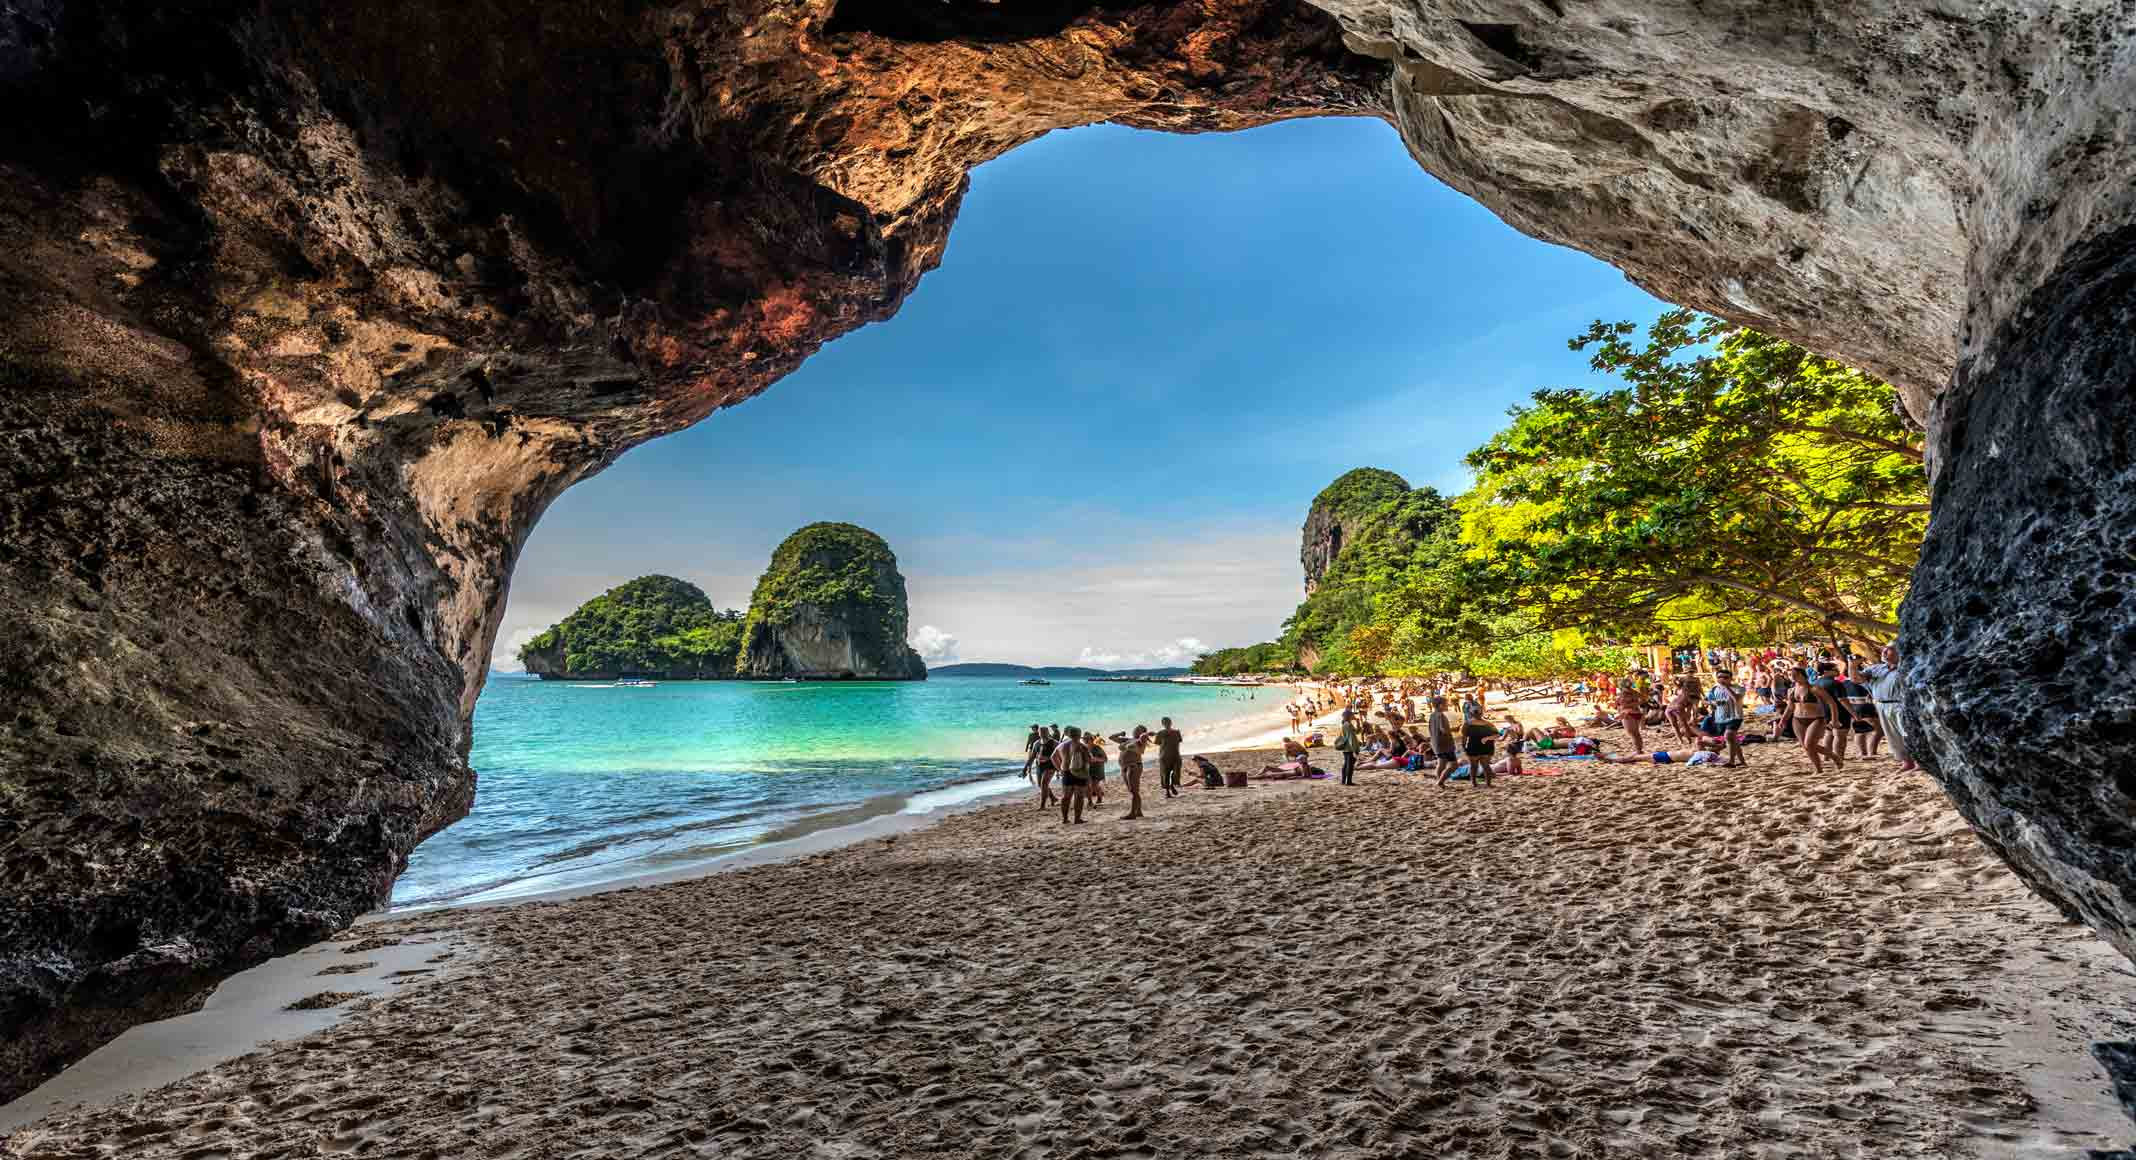 Check out: Railay, a beach haven in Krabi that lets you escape the world